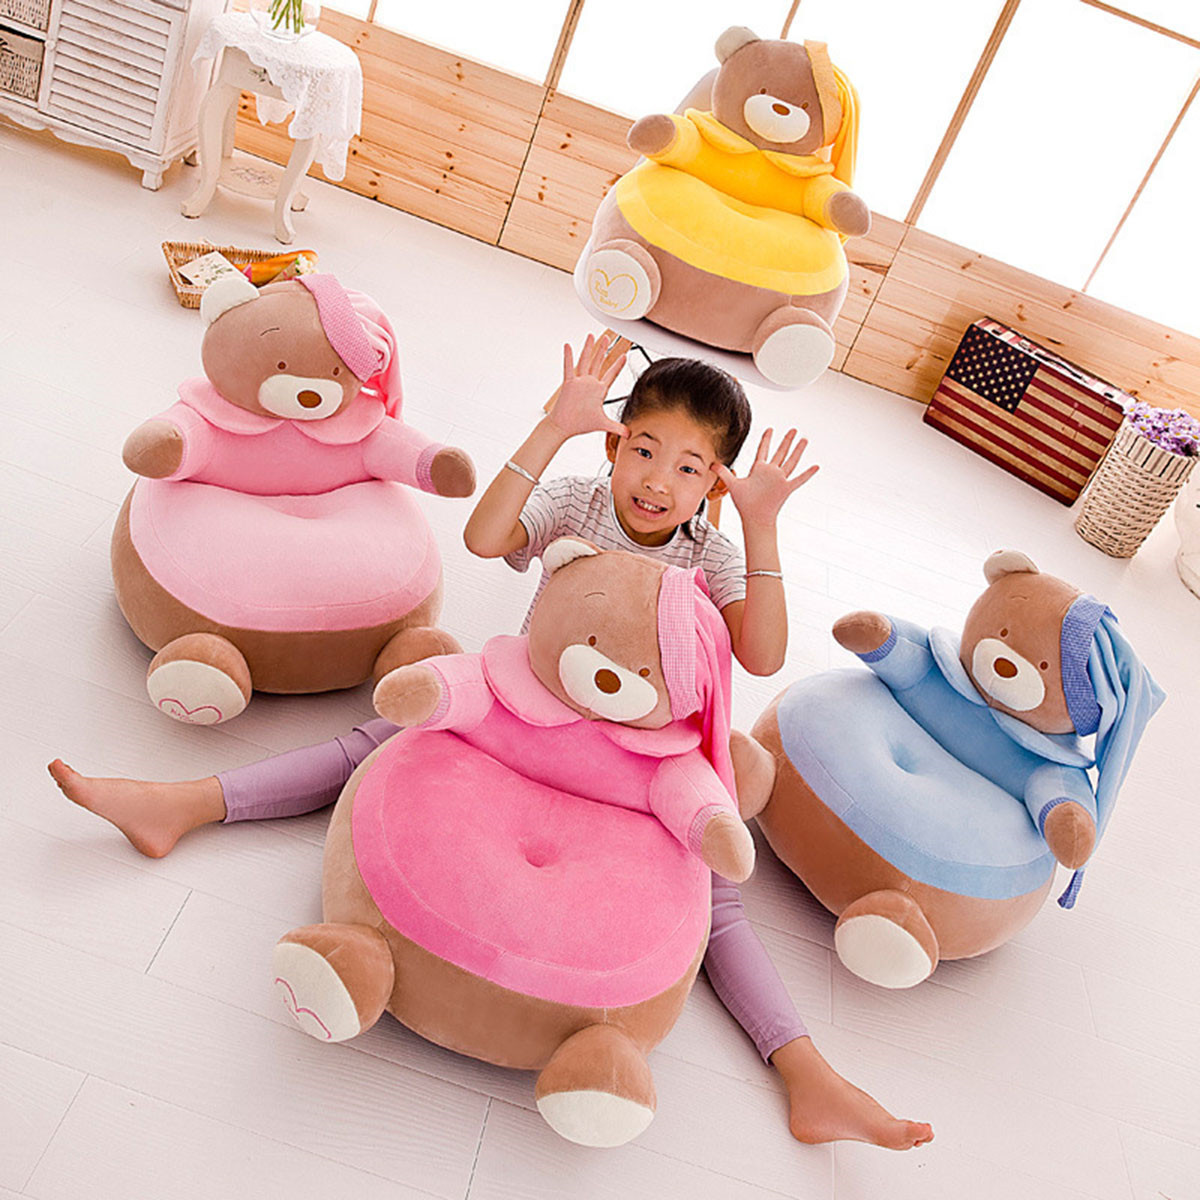 Baby Seat Baby Chair Bean Bag Cartoon Baby Crown Bear Nest Child Chairs Seat Puff Children Luxury Fur Sofa Seat Cover No Stuffed